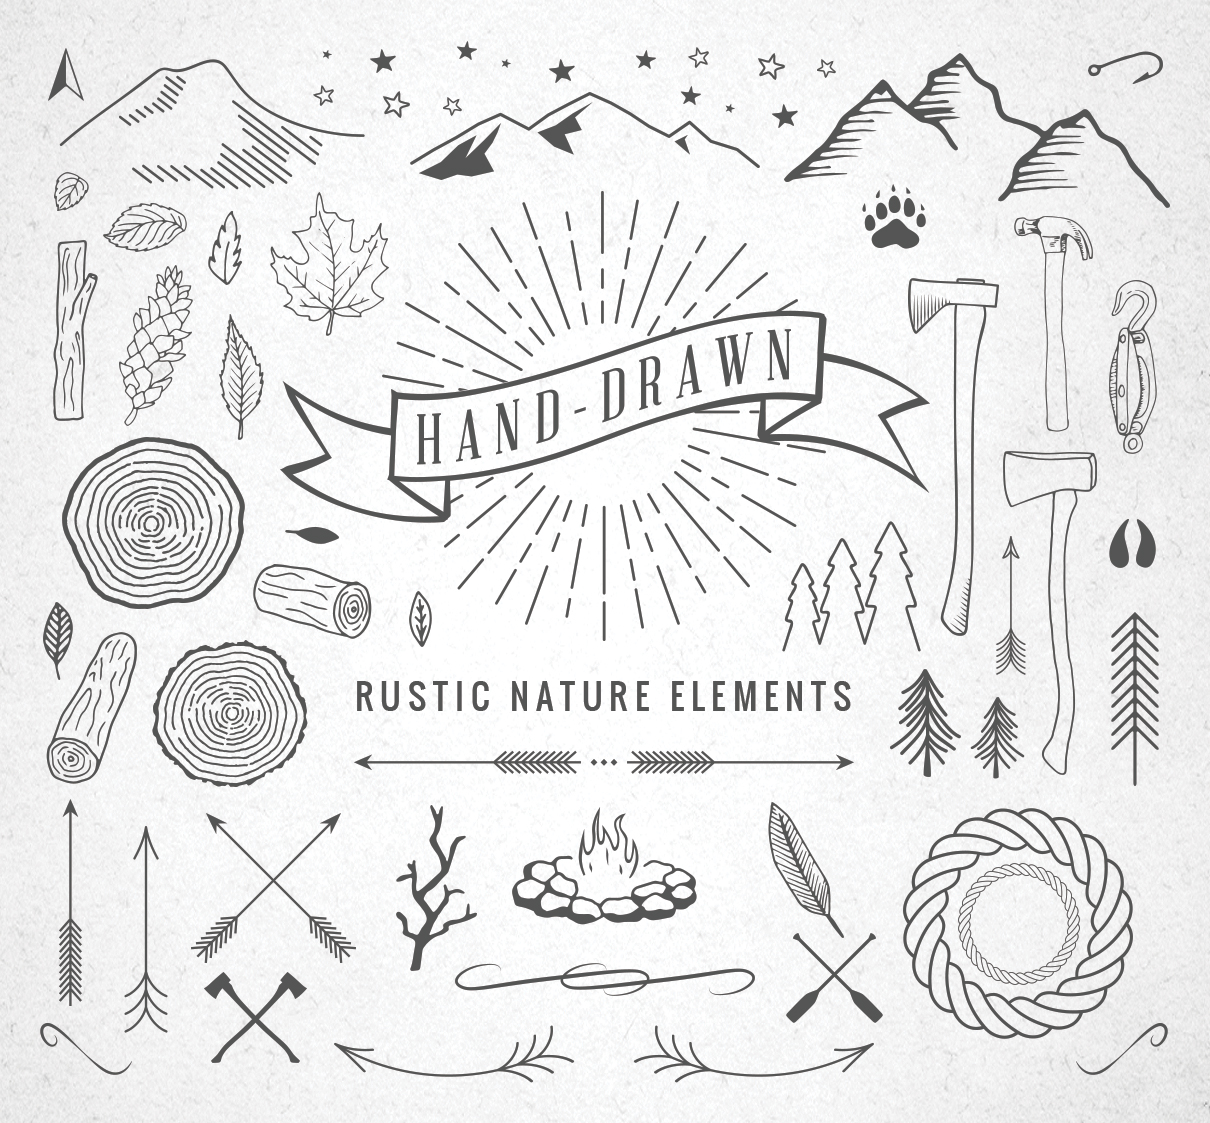 Nature Hand Drawing Hand-drawn Rustic Nature